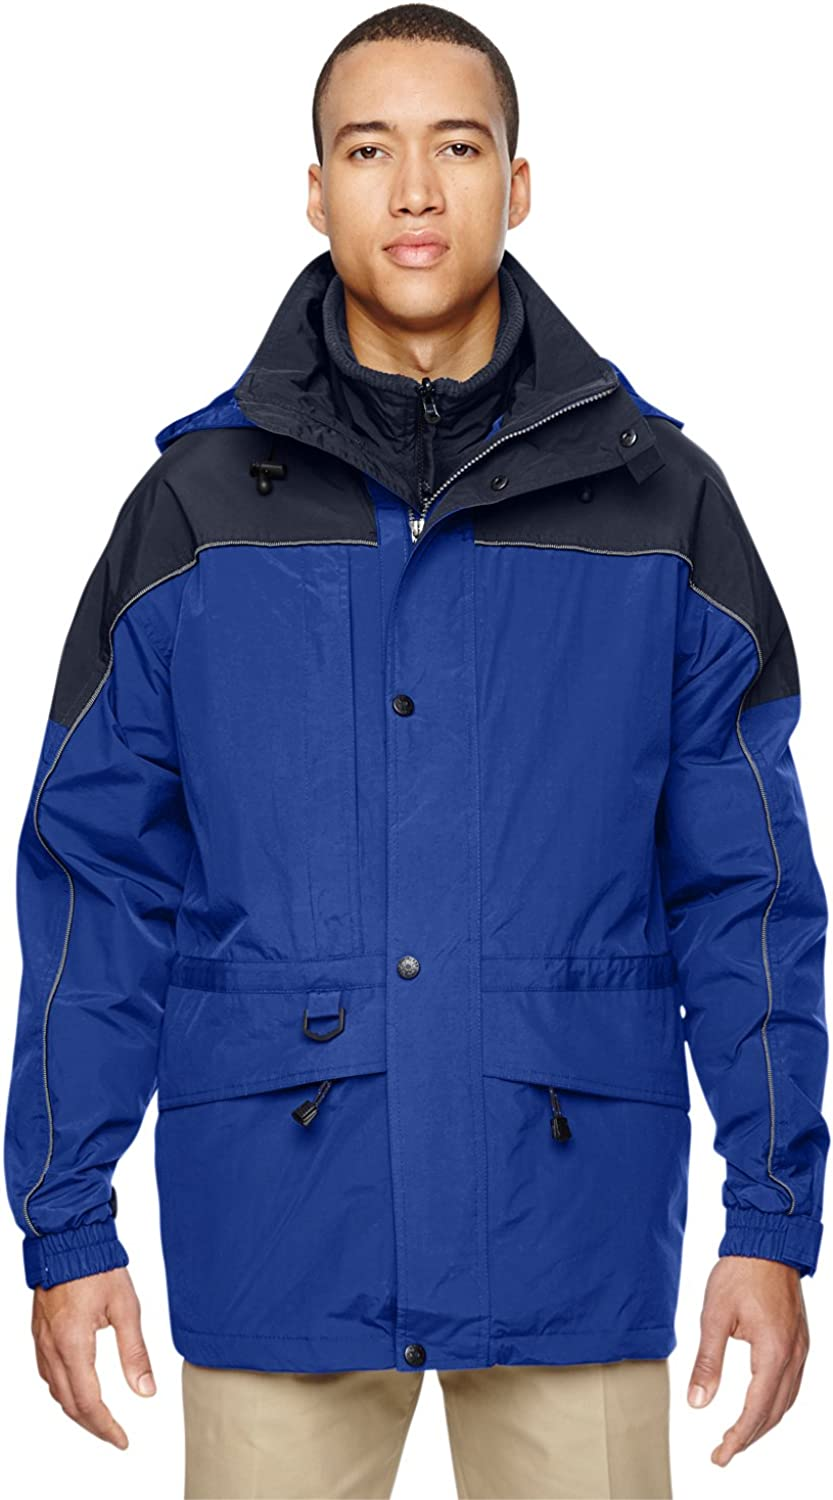 Ash City - North End North End Men's 3-In-1 Two-Tone Zip-Off Hood Parka, ryal Cobalt 714, XXXXX-Large